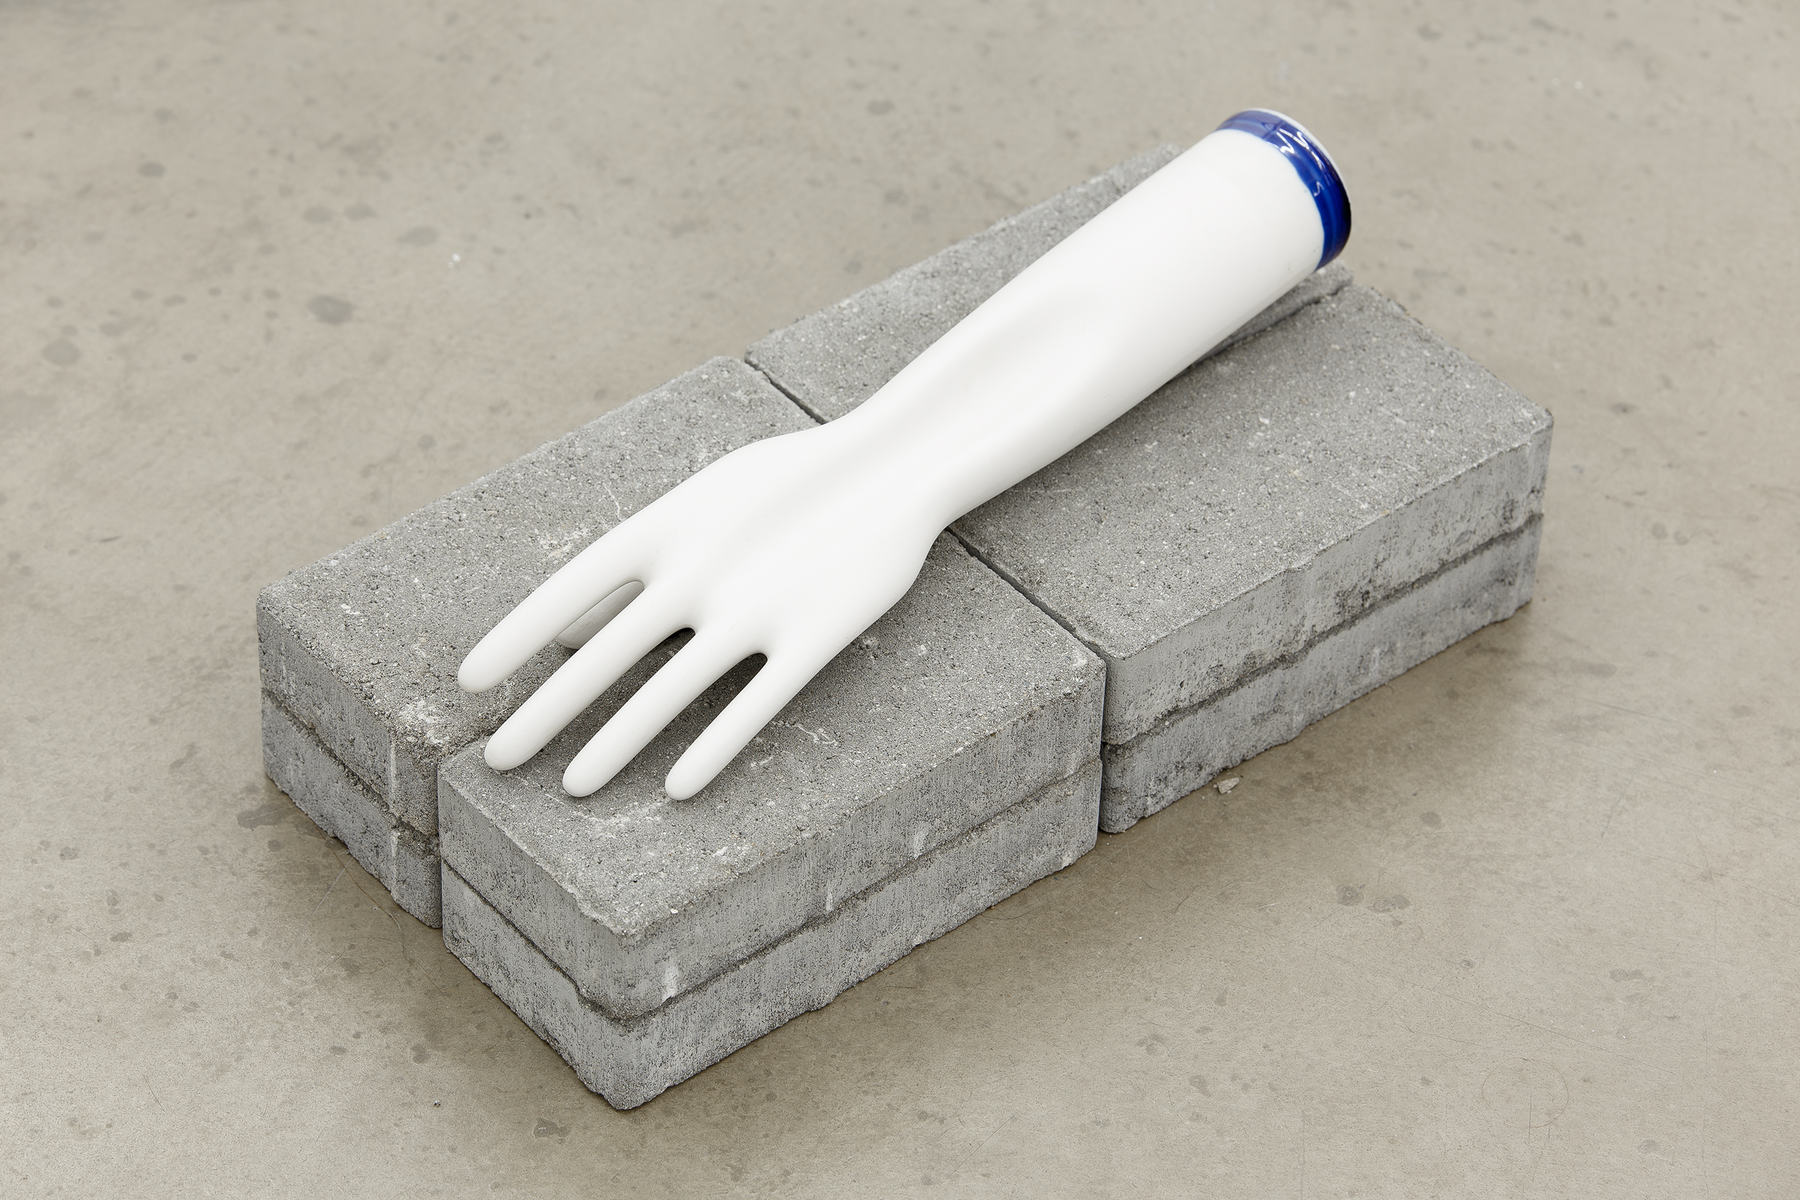 How it's made, 2015, porcelain glove mold, 9 x 27 cm